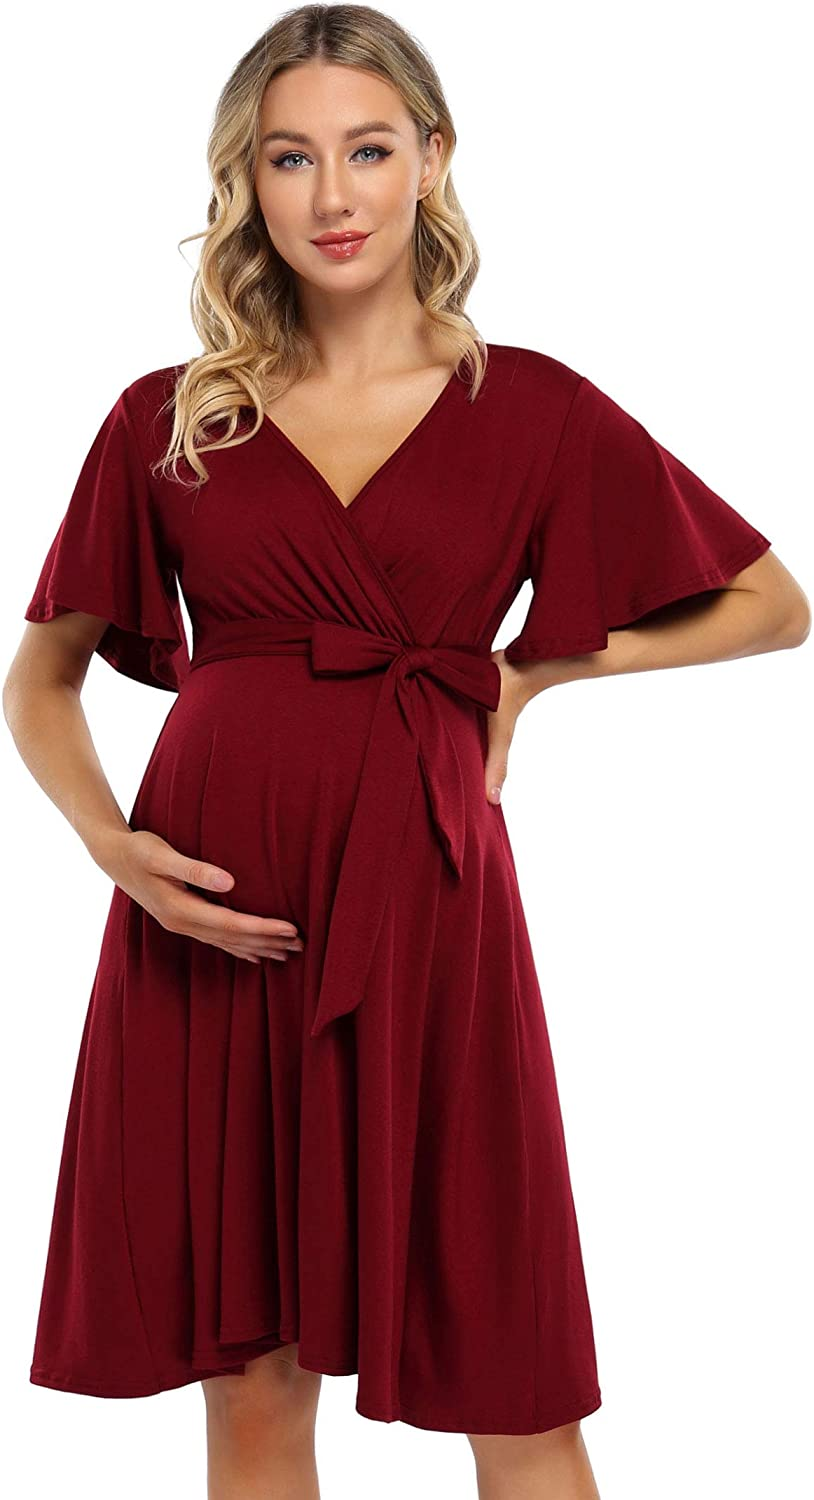 Women/'s Maternity Dress Bell Sleeves Front Bow Belt 3//4 Sleeve Tunic Blouse